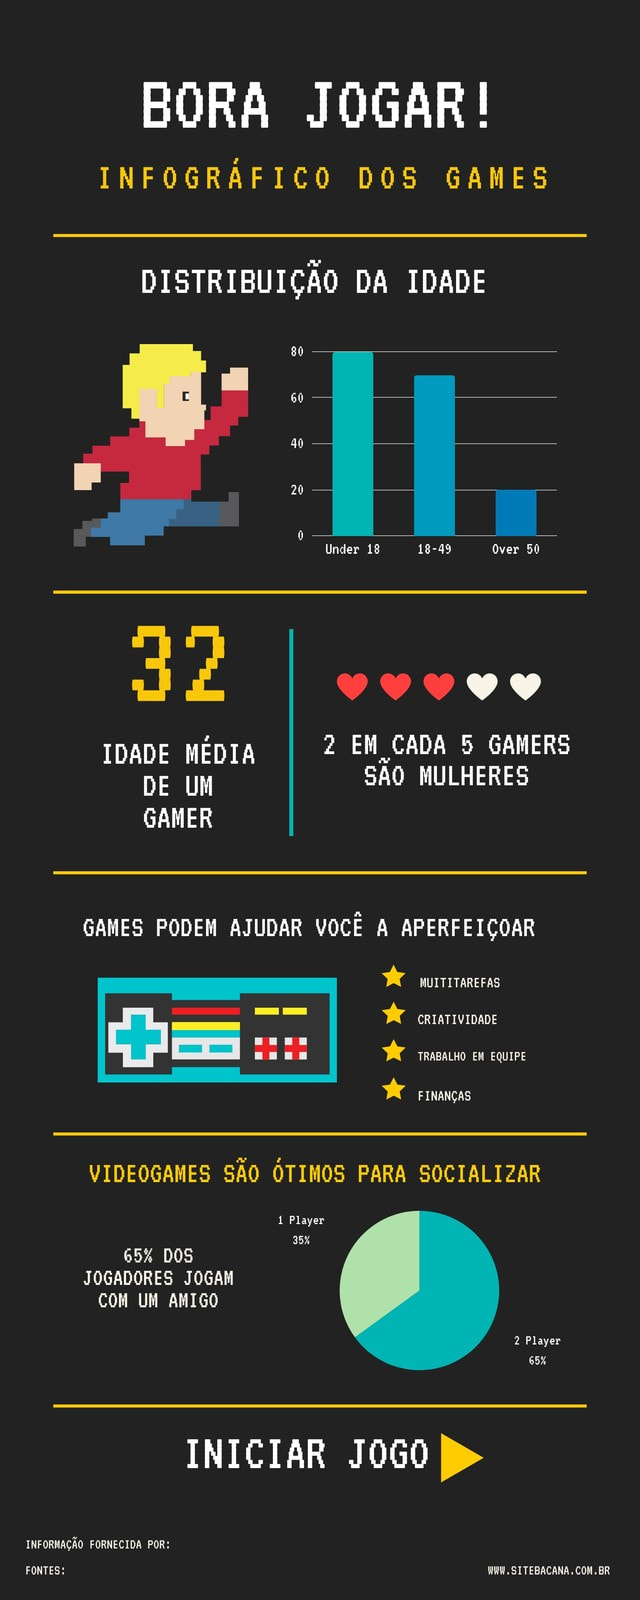 Legal Ilustrado Games Infográfico